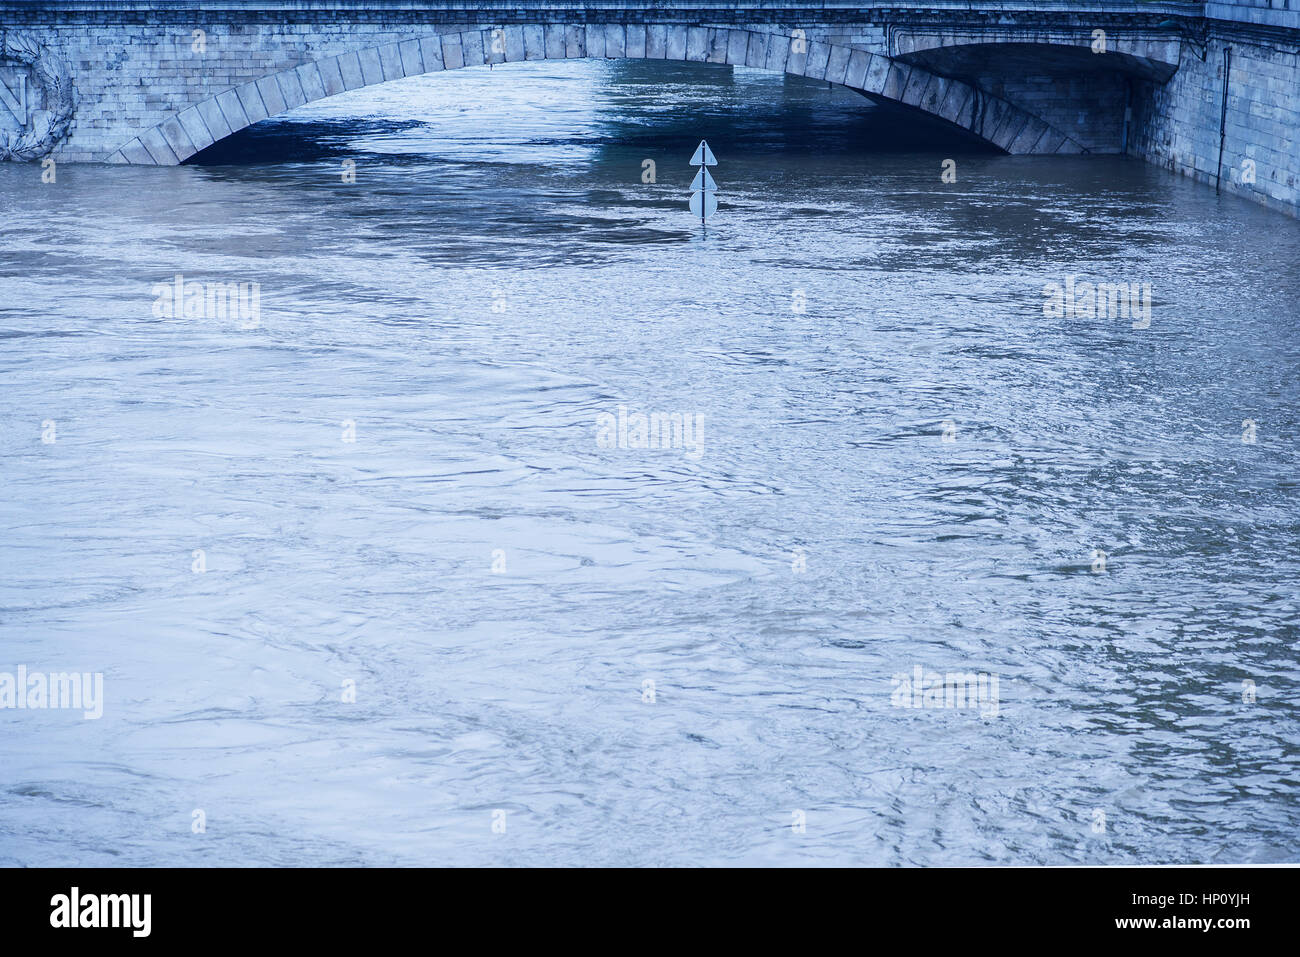 Rising waters during a period of flooding in the Seine River, Paris, France - Stock Image